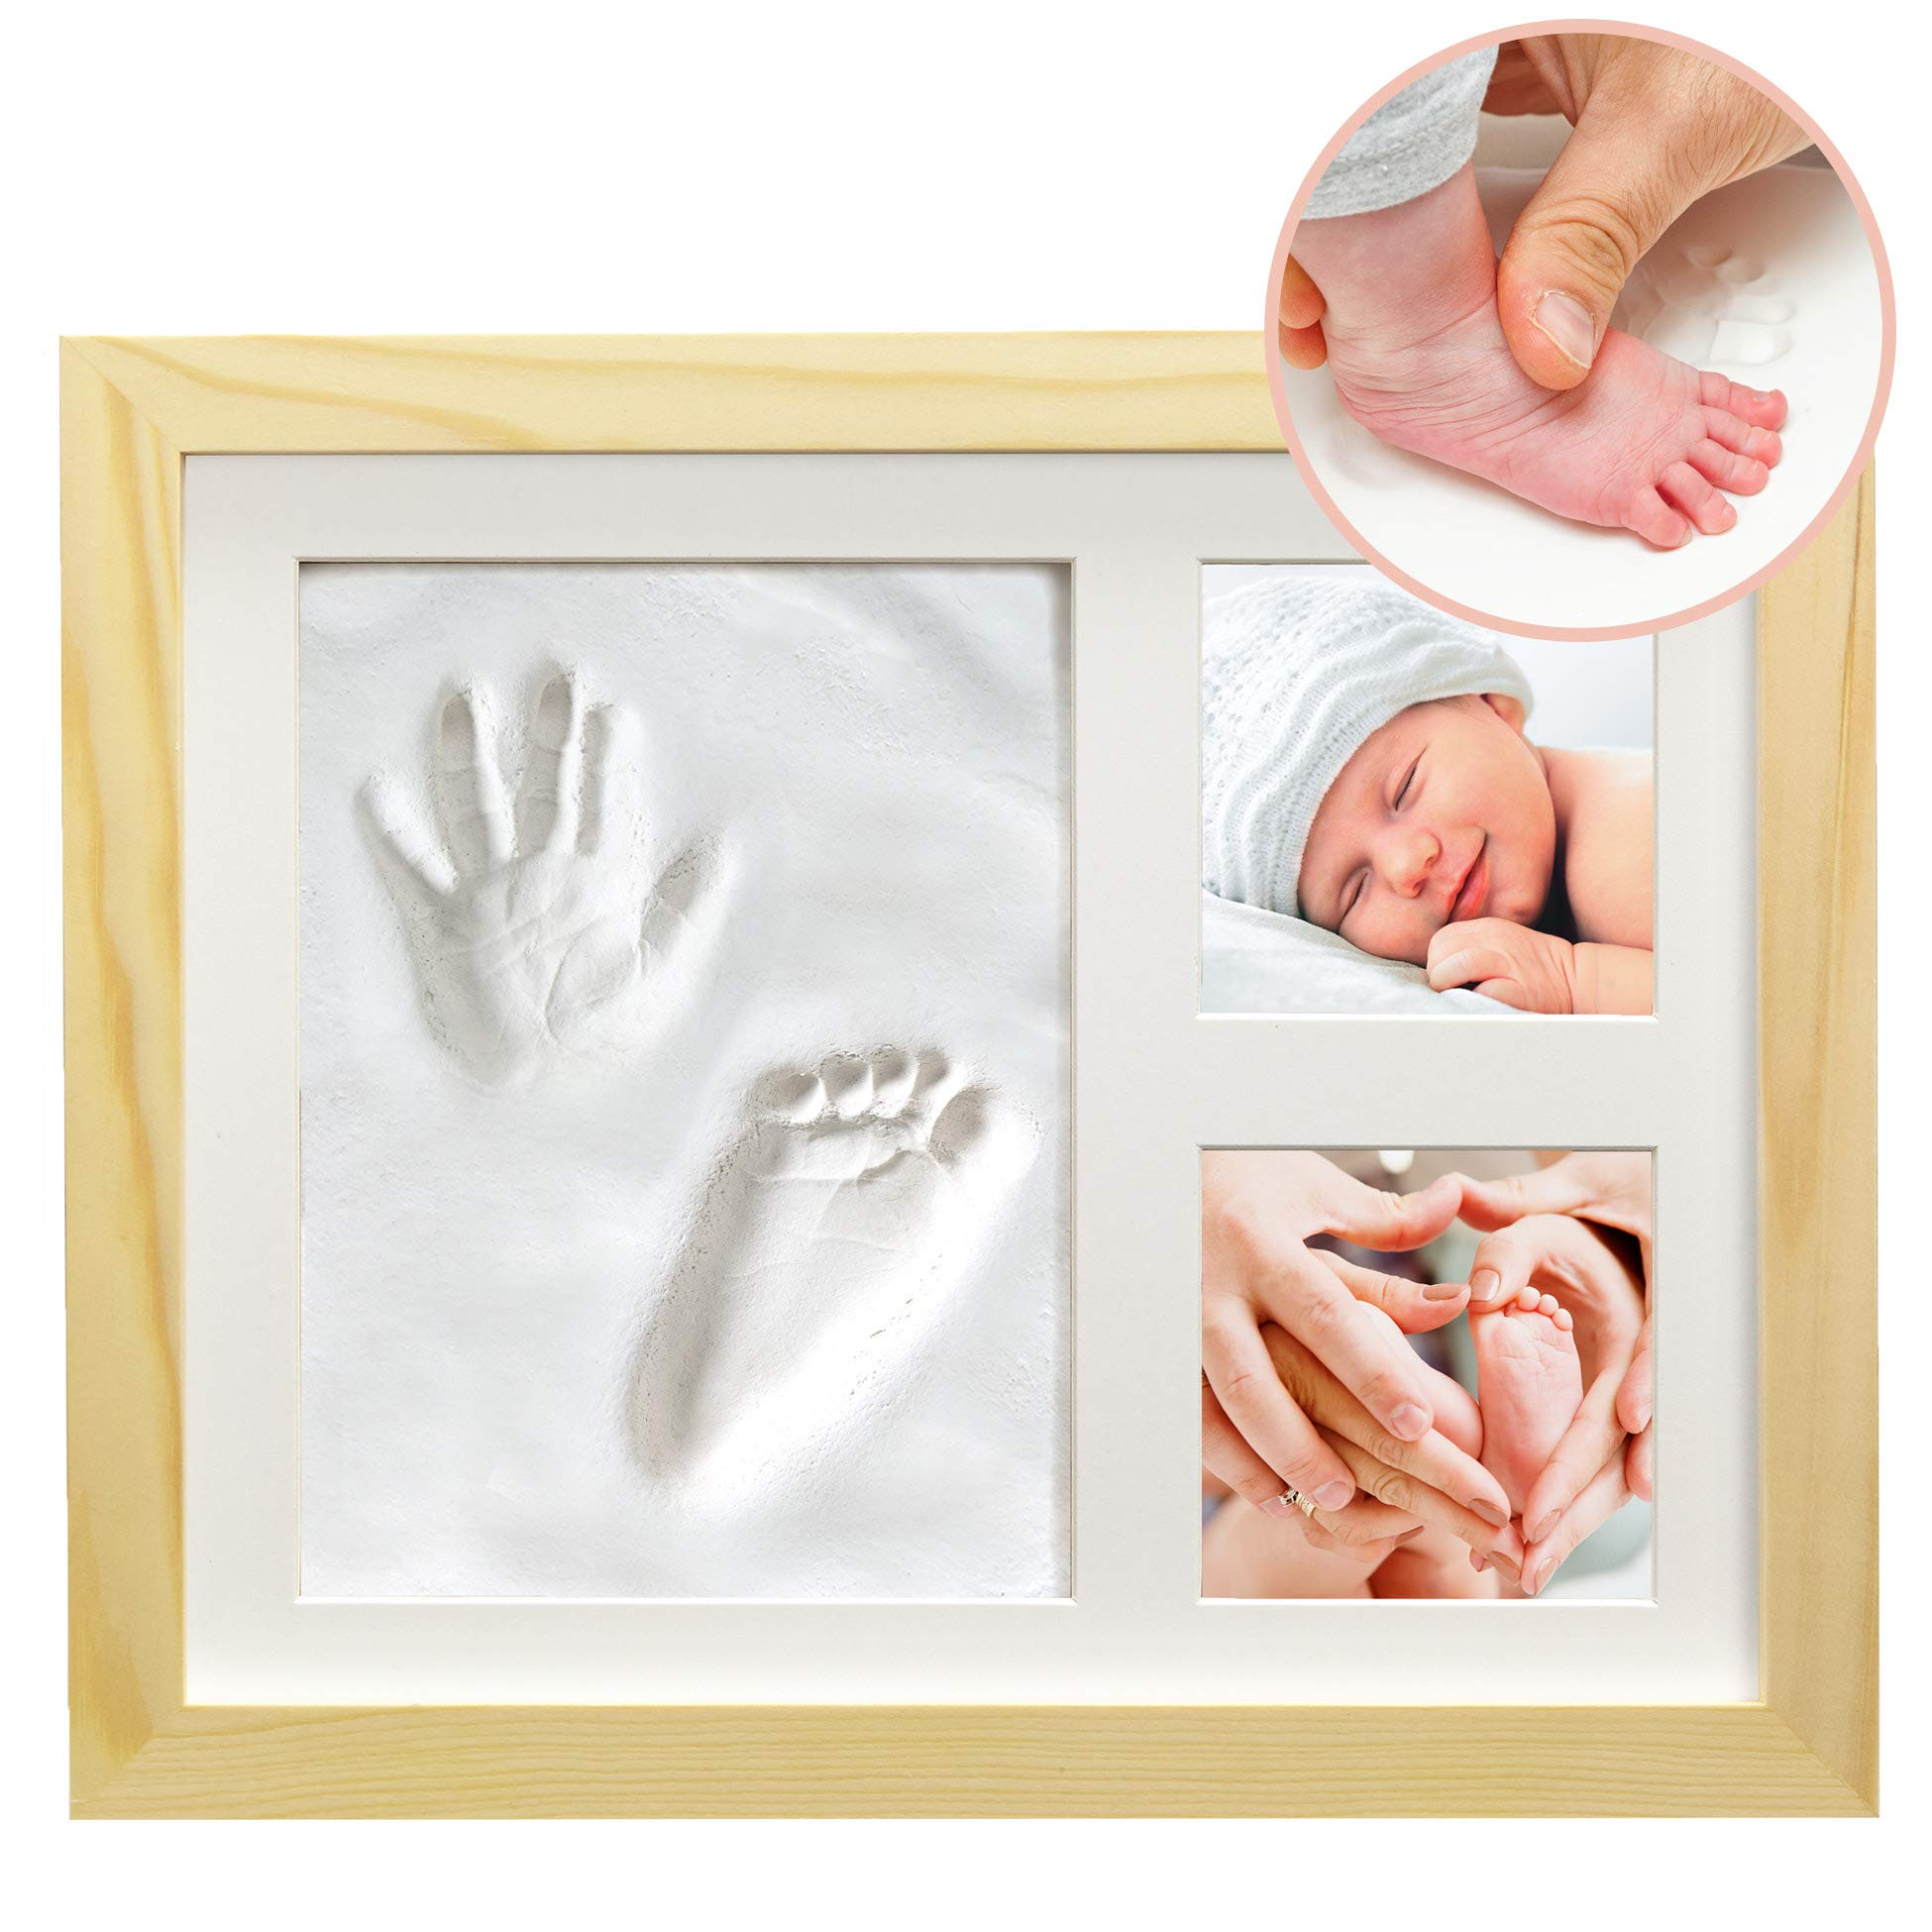 "Clay Hand/Footprint Photo Frame for Babies, Kids, and Pets – Includes 9"" x 11"" Natural Wood Colored MDF Photo Frame, Roller, Mounting Hardware, and Instructions -''Pose''ies"